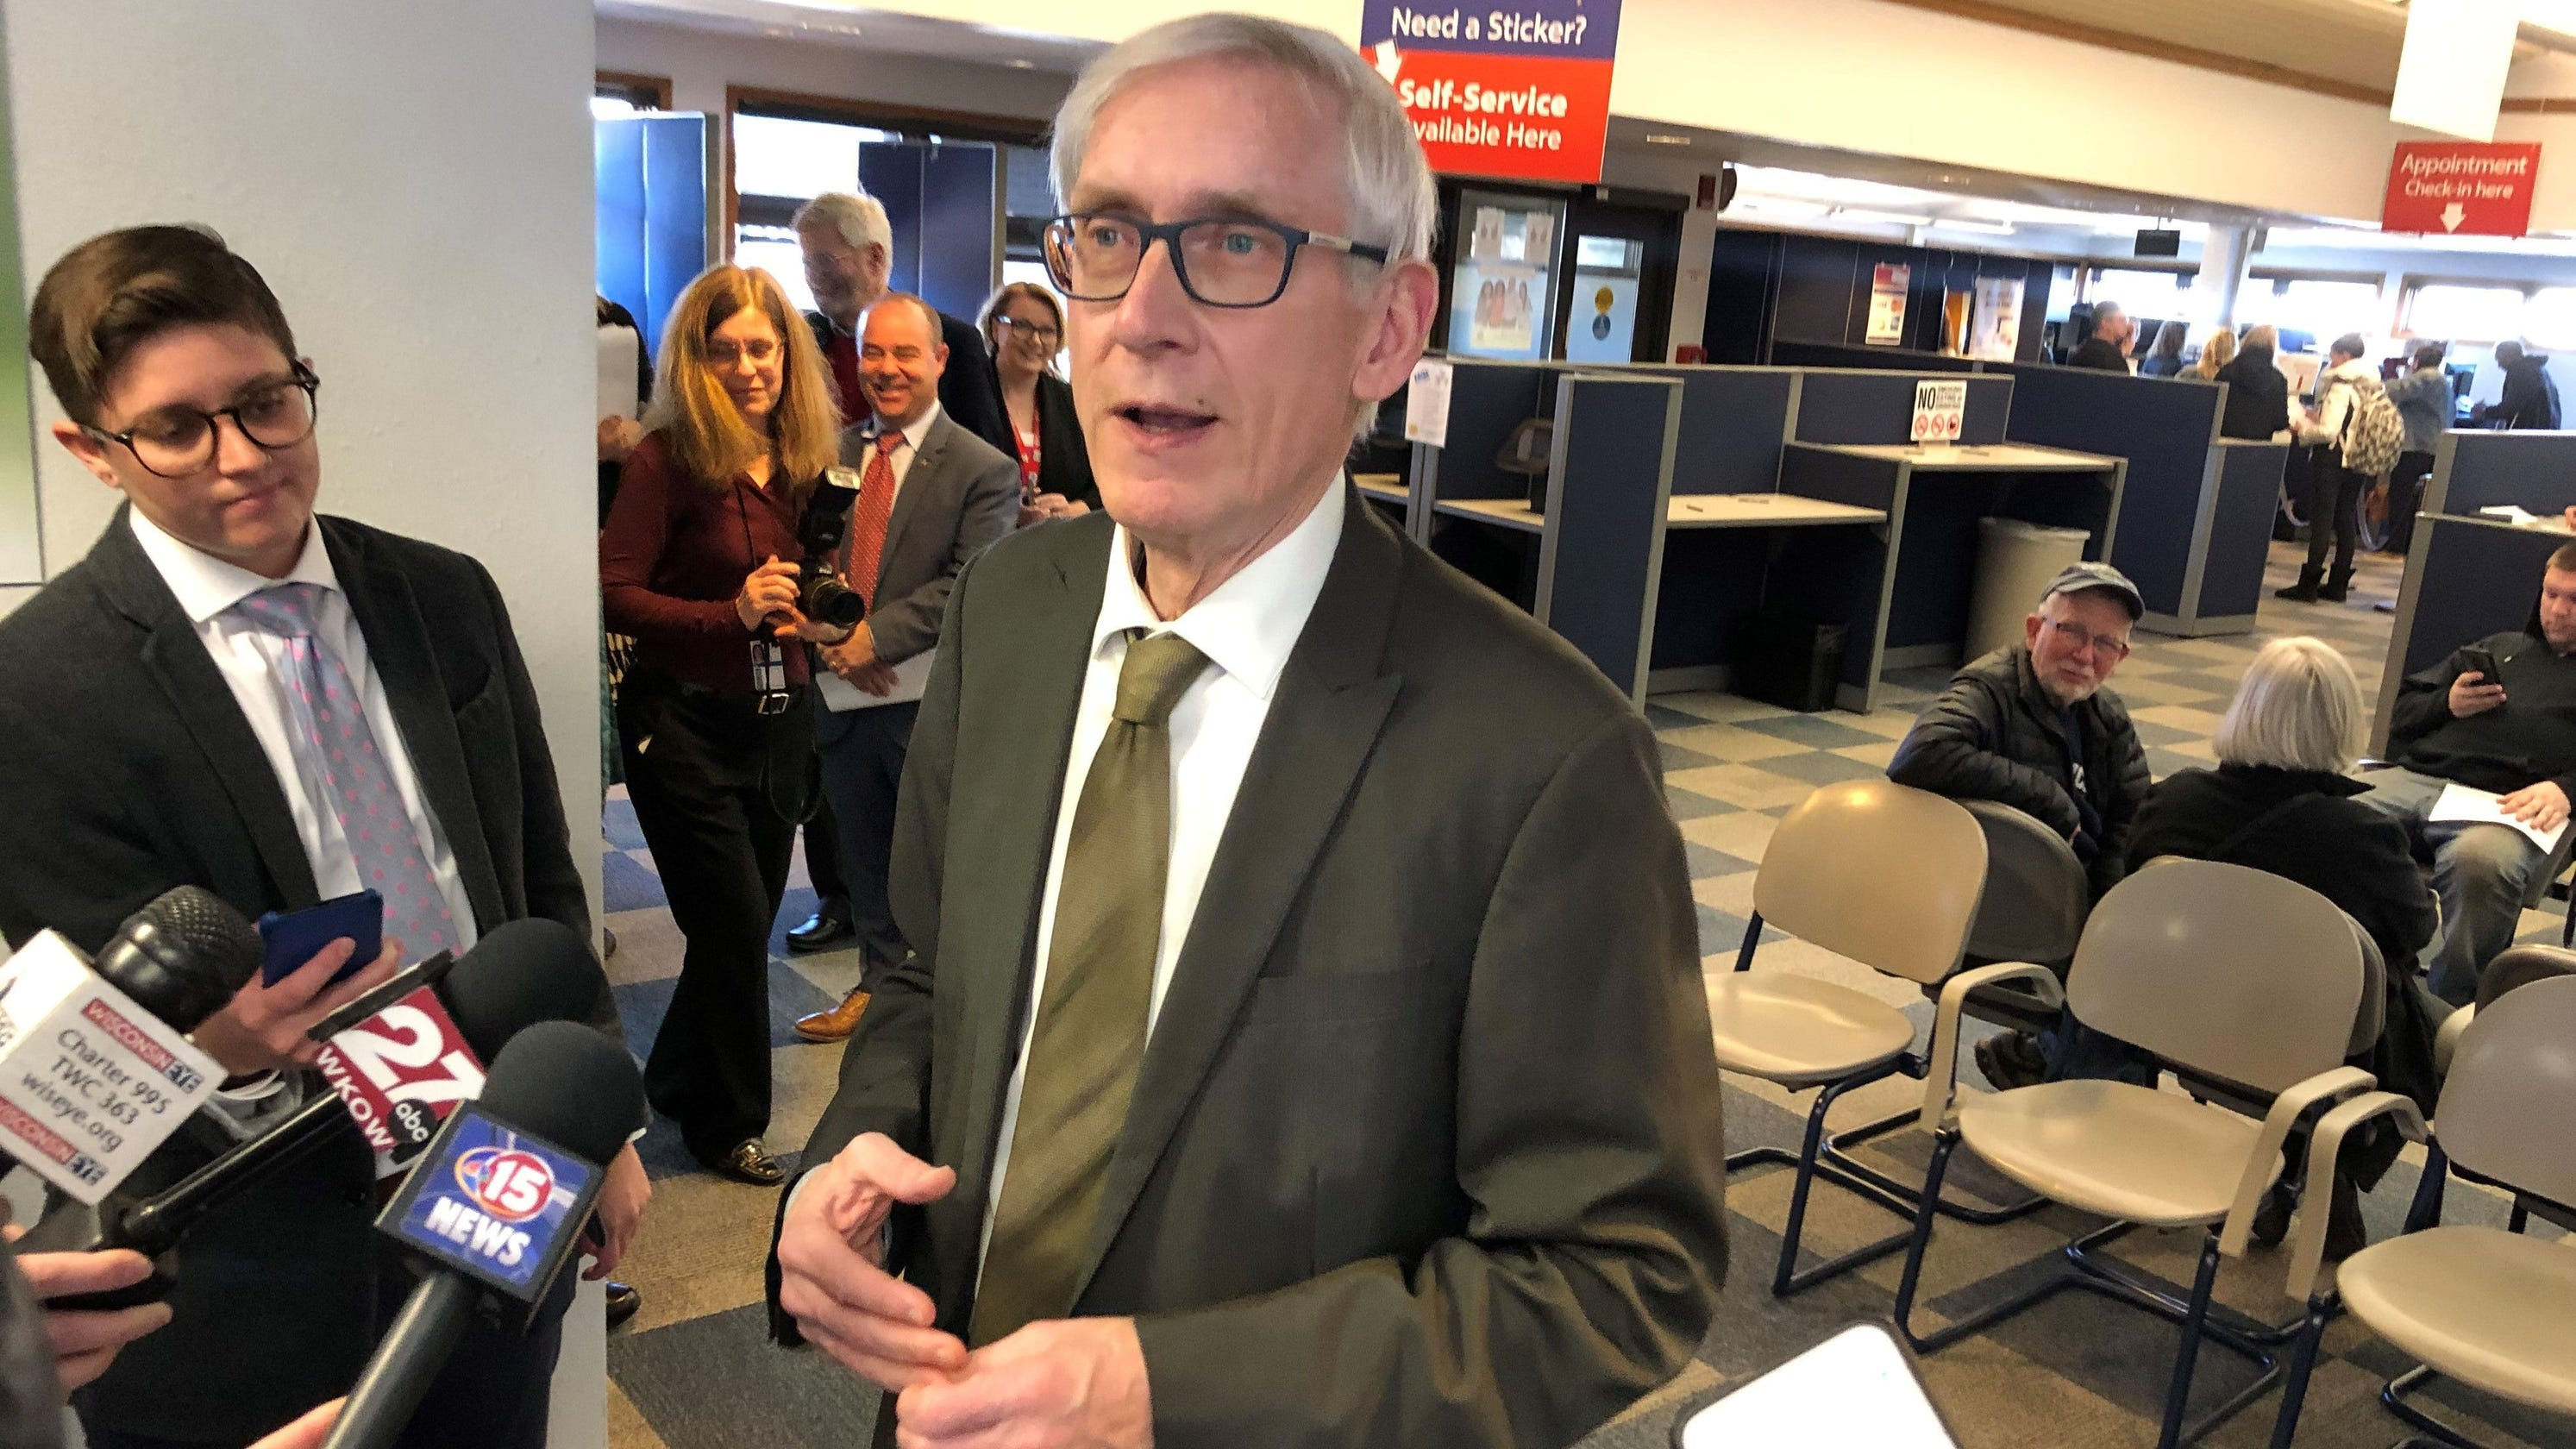 Foxconn must meet job creation goals to get subsidies. Tony Evers says maybe those goals are too high. - Milwaukee Journal Sentinel